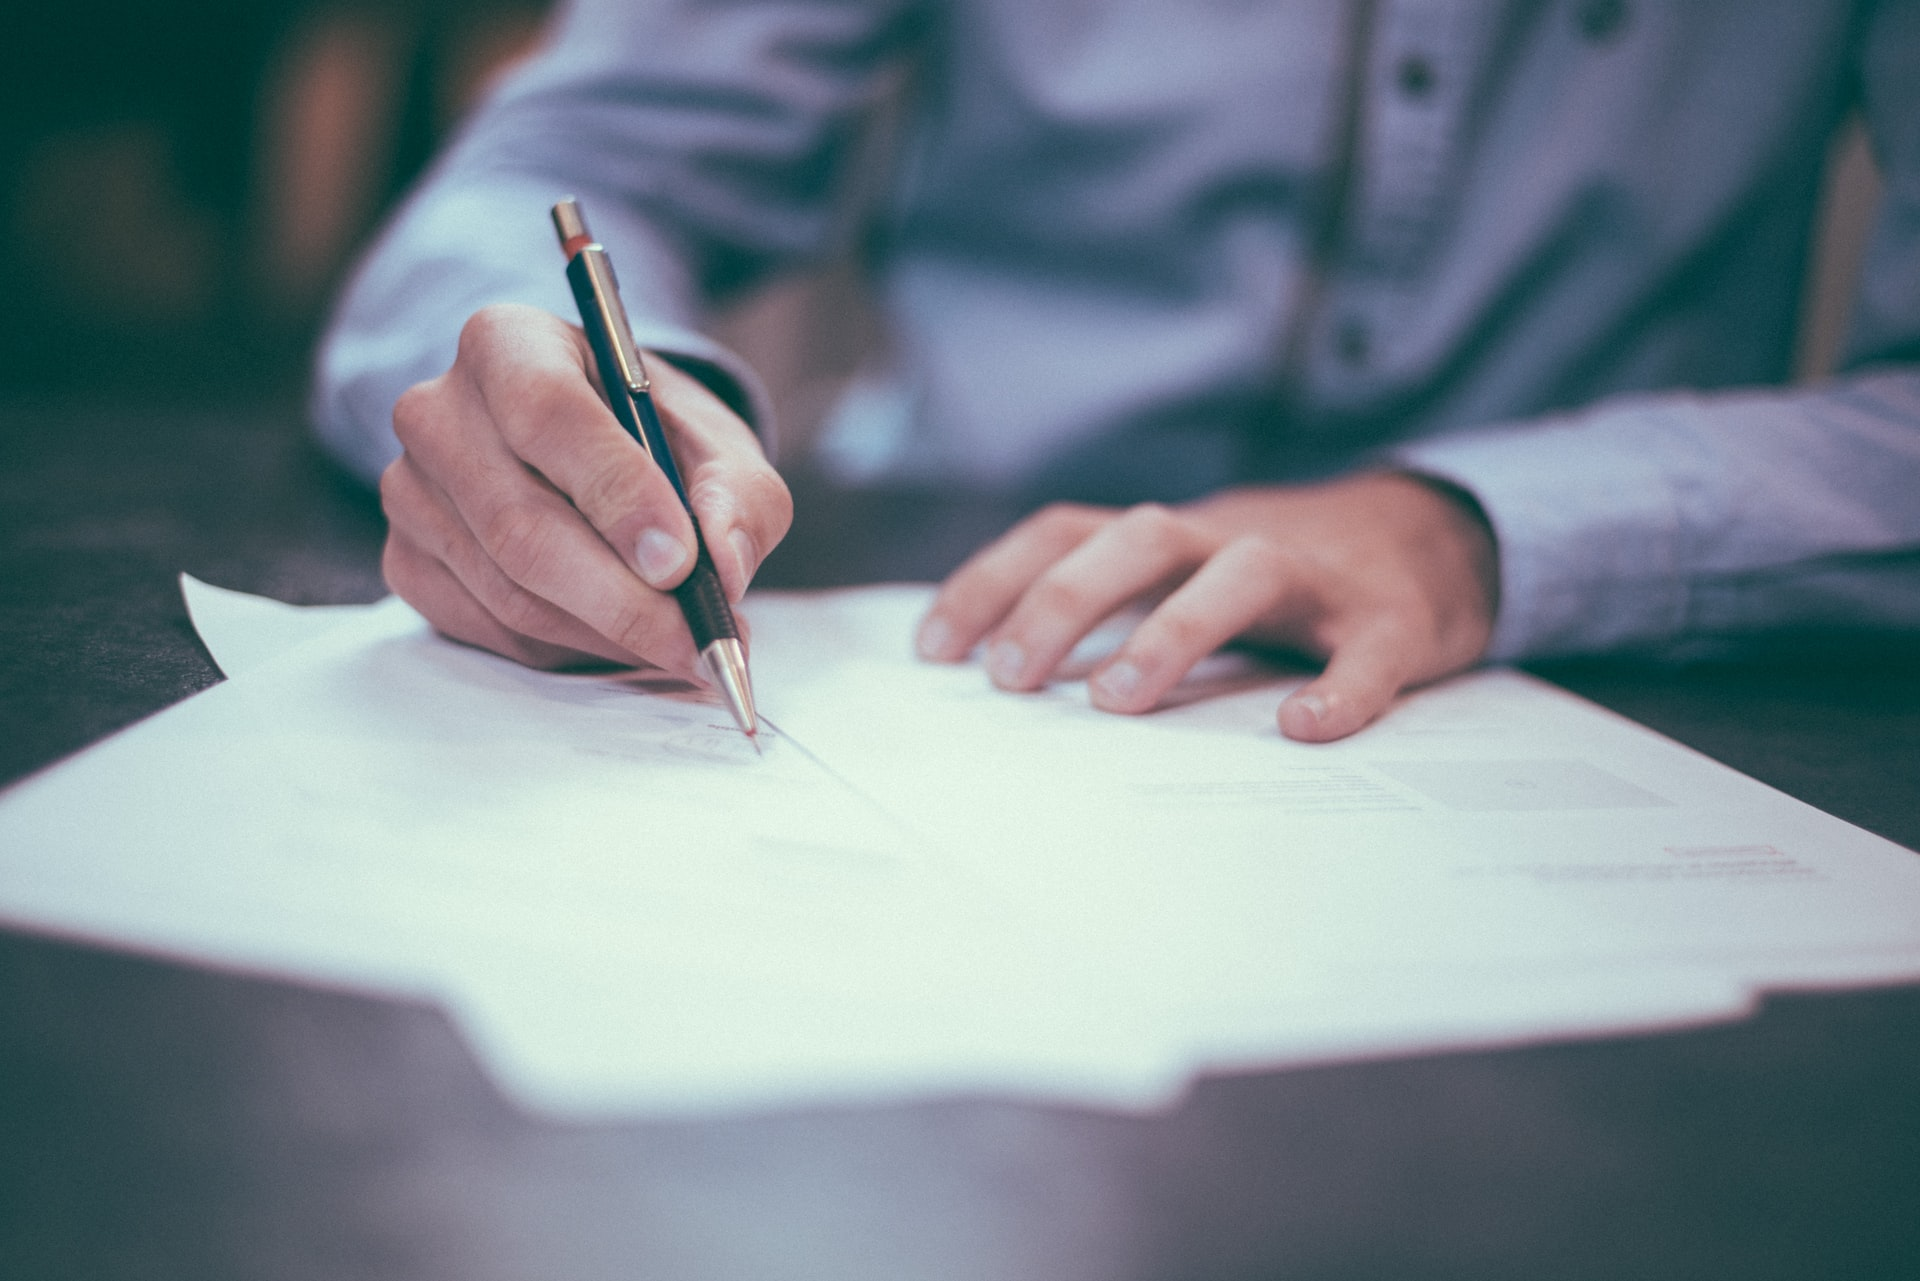 A man signing a contract. It's good to know some basic moving contract terms.